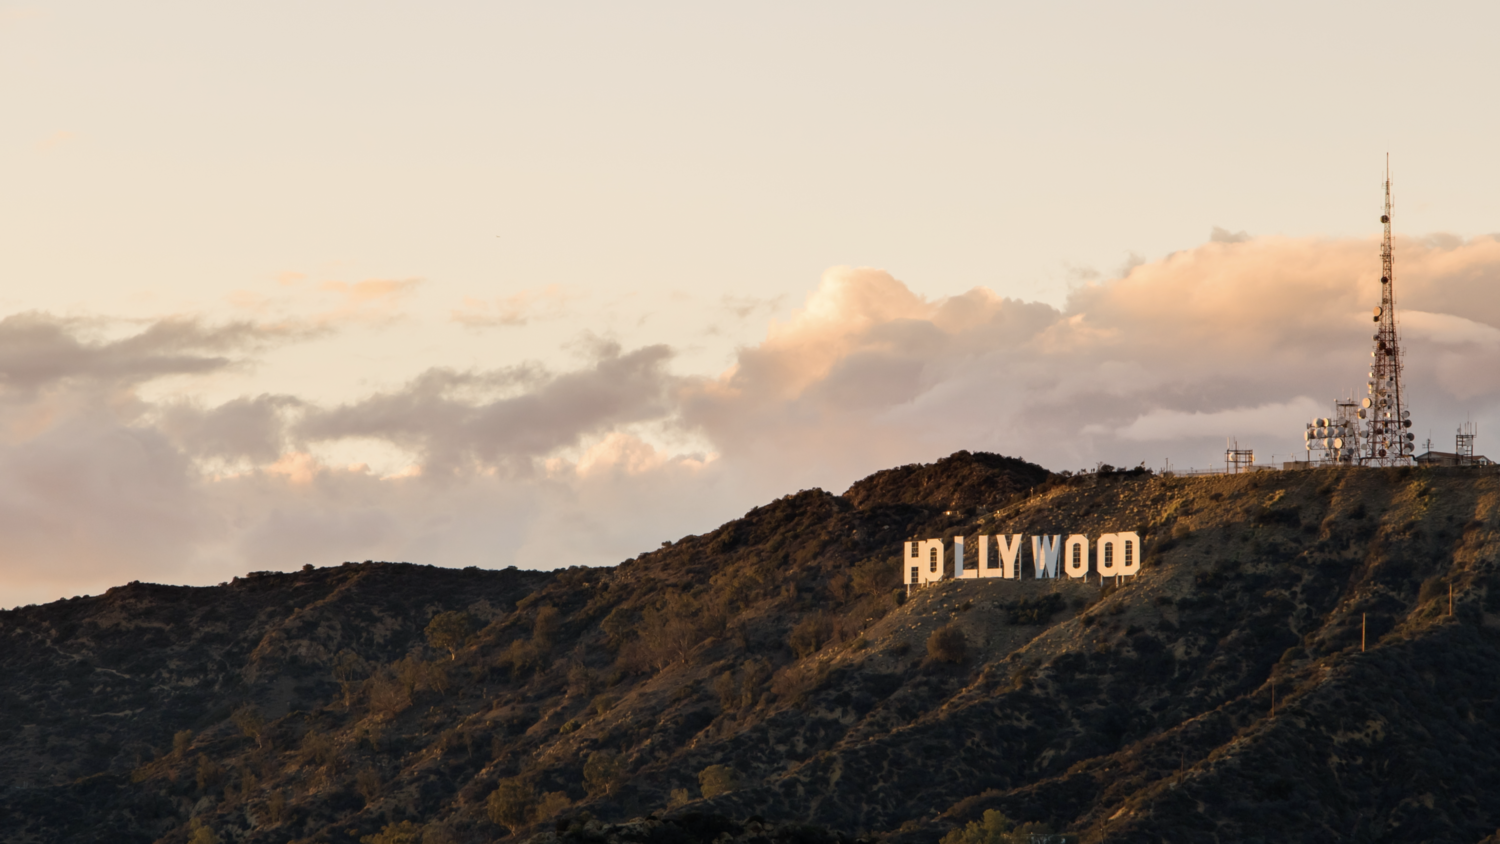 (HD) Hollywood Sign and Clouds Golden Hour.